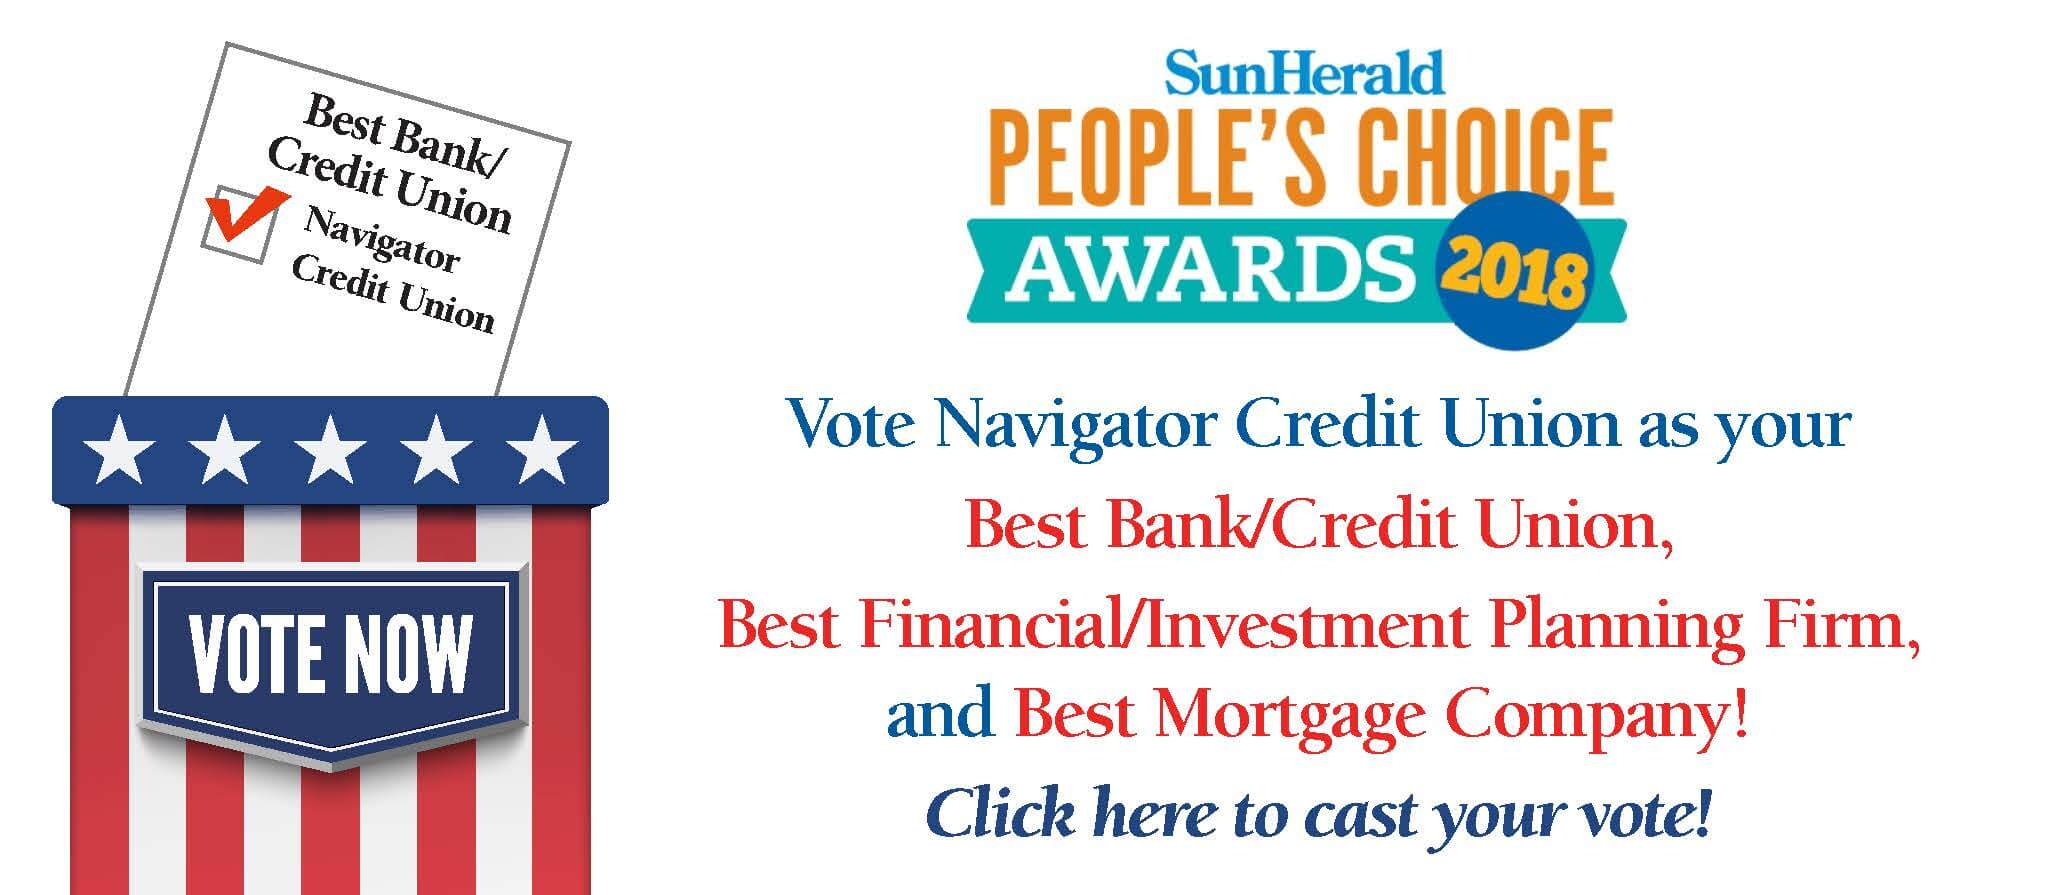 Vote Navigator Credit Union for Peoples Choice Award in best bank credit union, best financial investment firm and best mortgage company